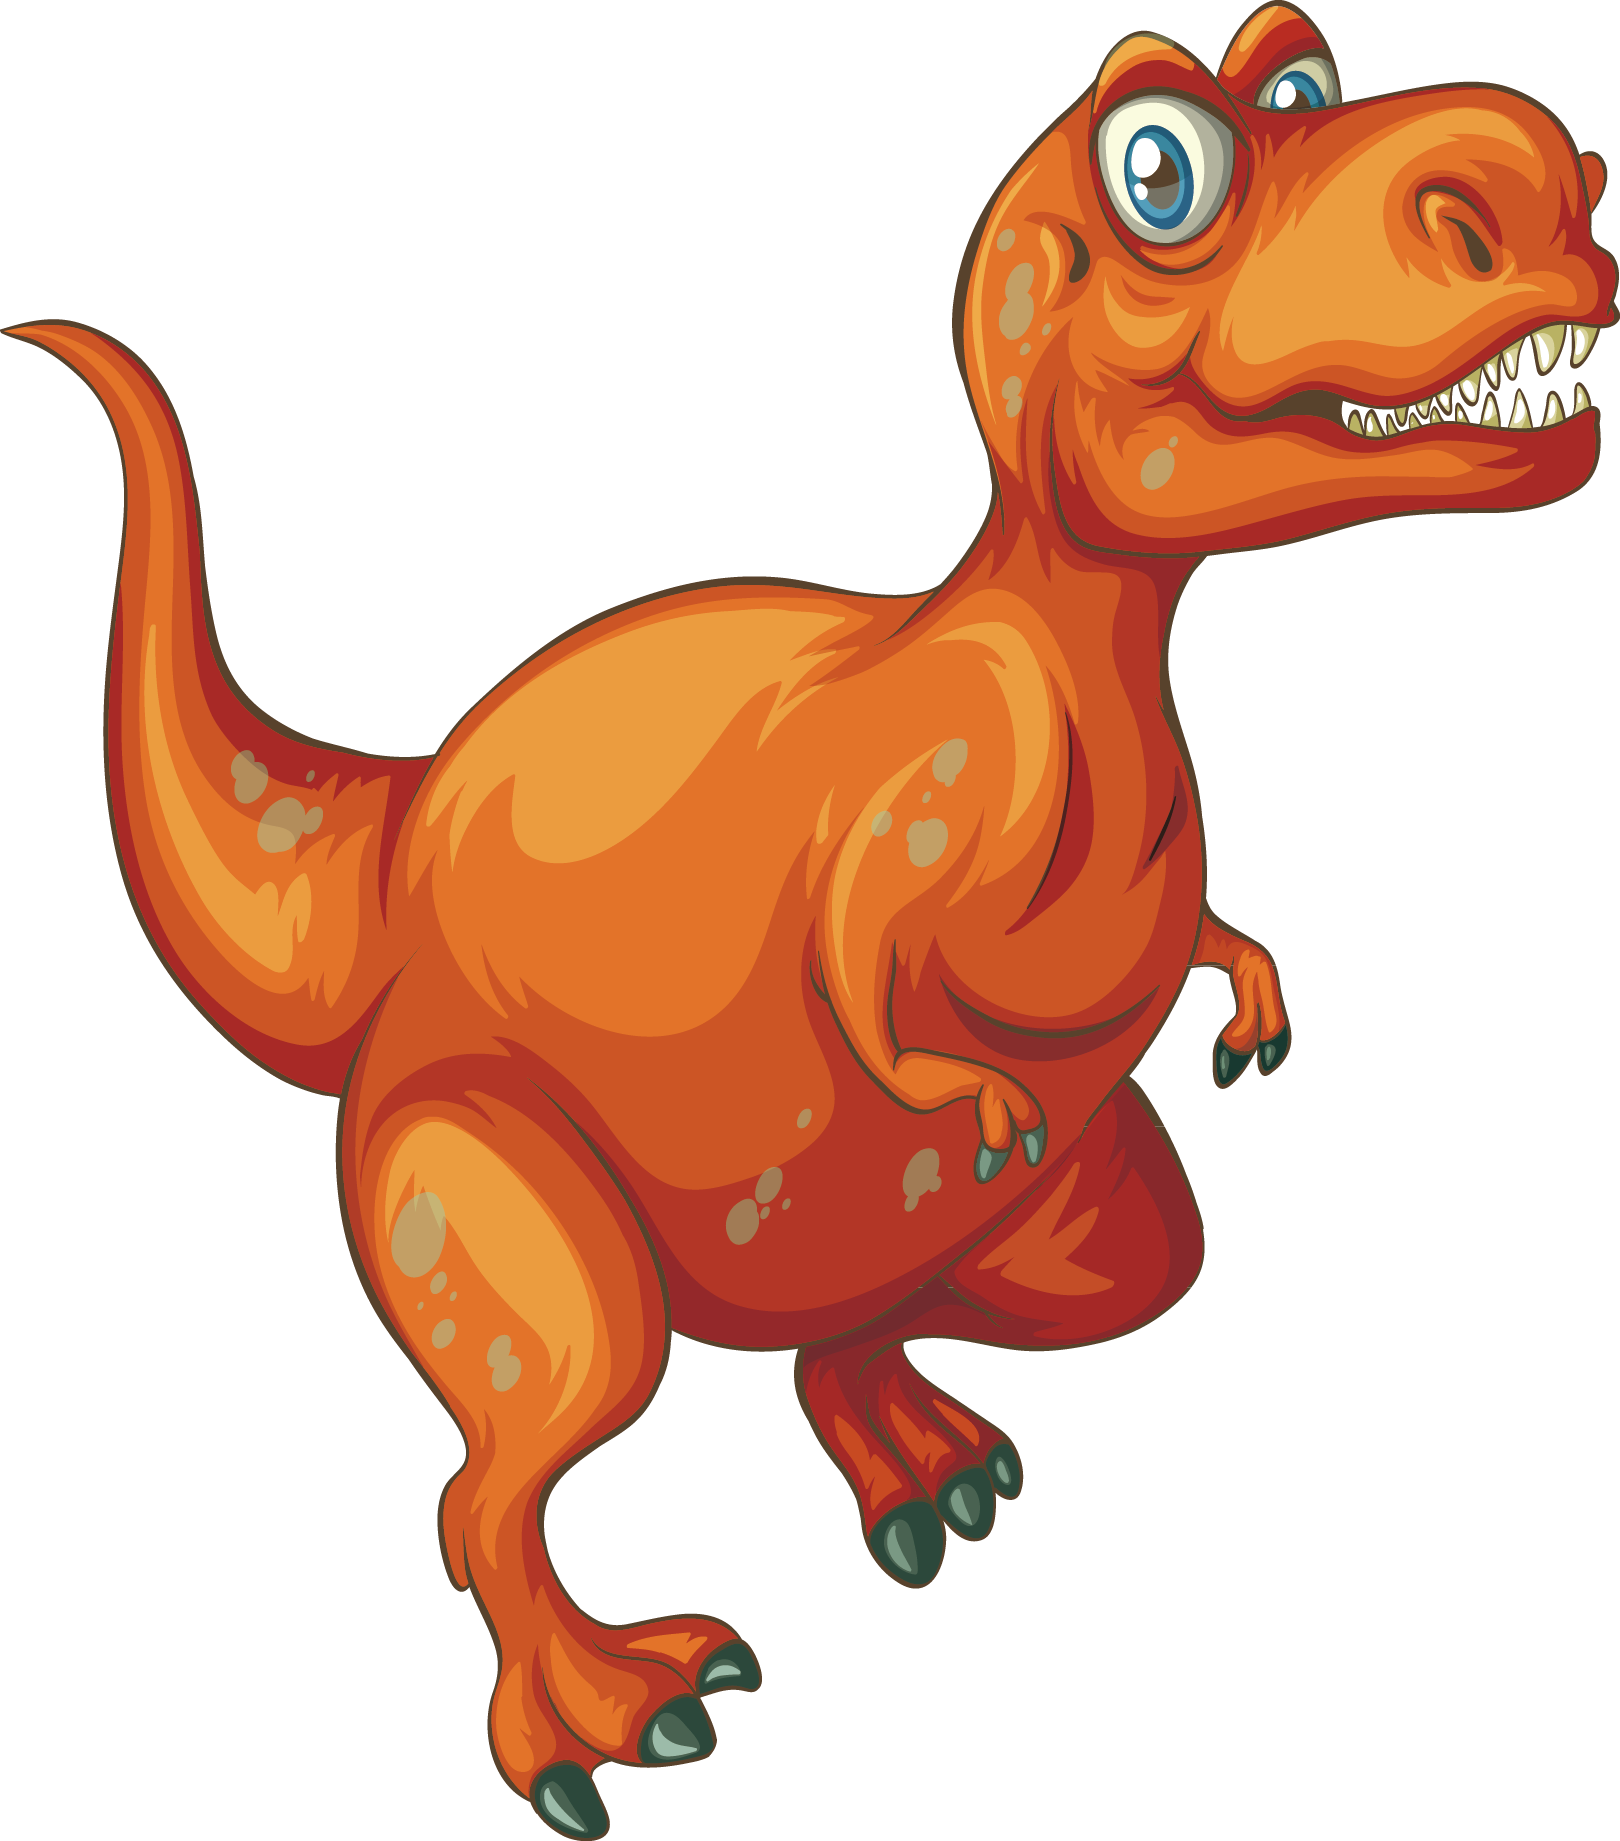 1620x1841 Collection Of Free Dinosaur Vector Watercolor. Download On Ubisafe